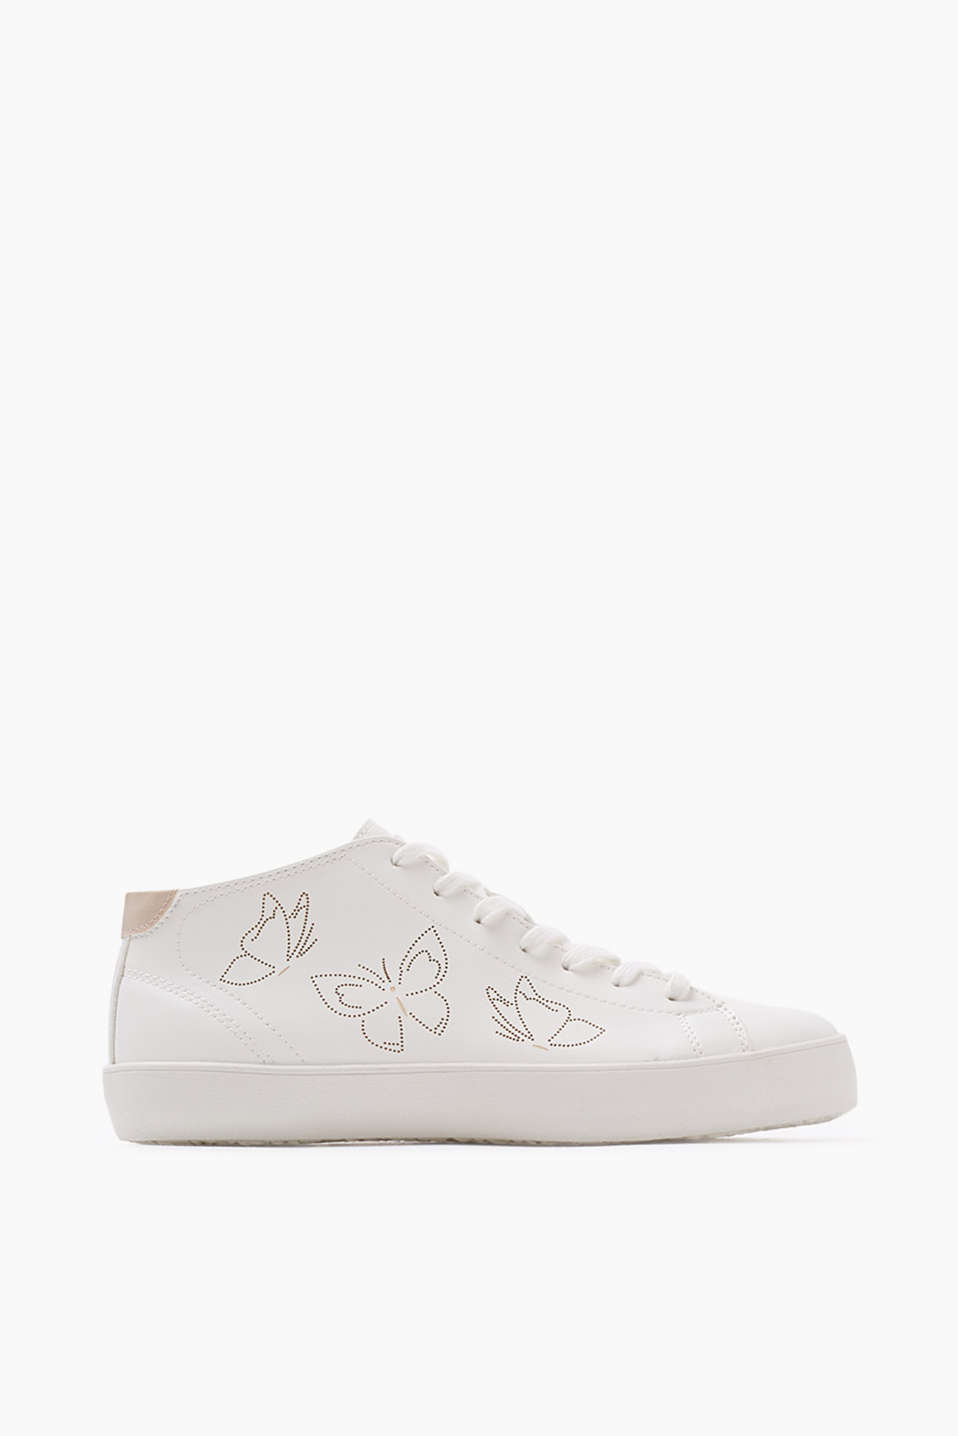 High-top trainers with inside leg zips and a feminine, stamped-out butterfly pattern